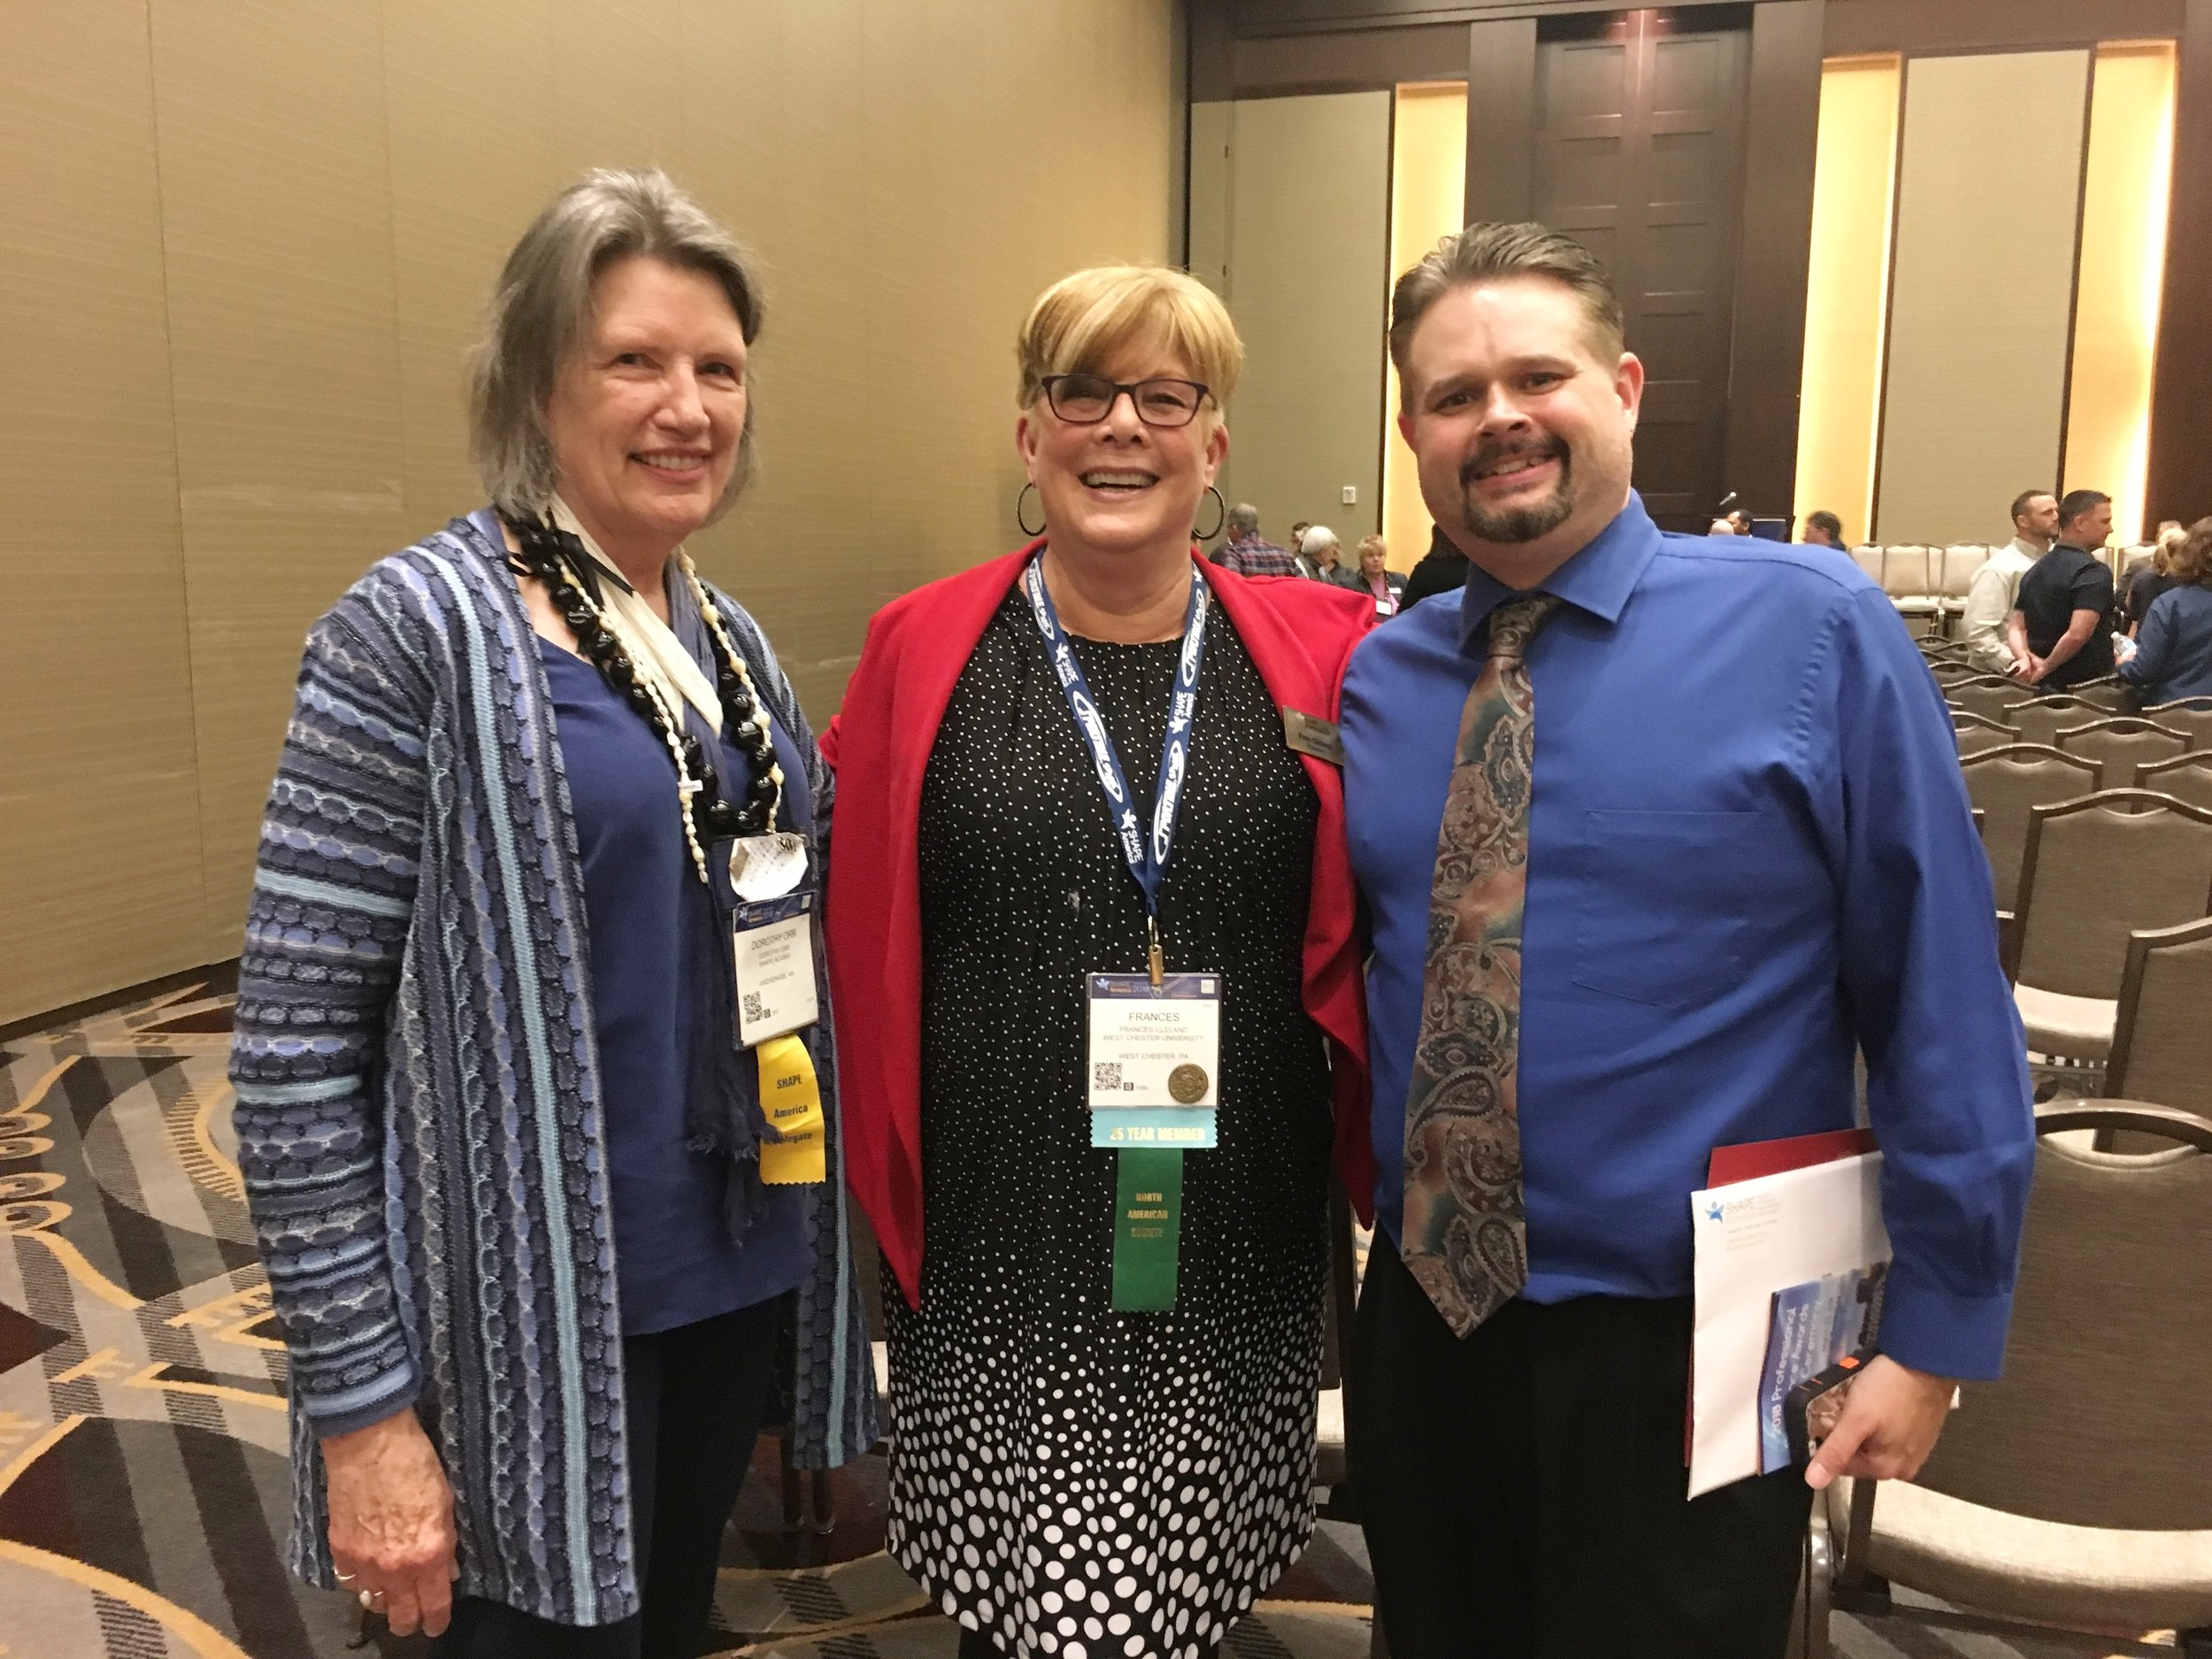 SHAPE America President Fran Cleland flanked by Dorothy Orr, SHAPE Alaska's Executive Director and Honor Award Winner, and Bill Pugh, Anchorage Physical Educator and AHA/Jump Rope for Heart grant winner. (Photo taken at Honor Awards Ceremony, SHAPE America Convention in Nashville, TN. March 2018)